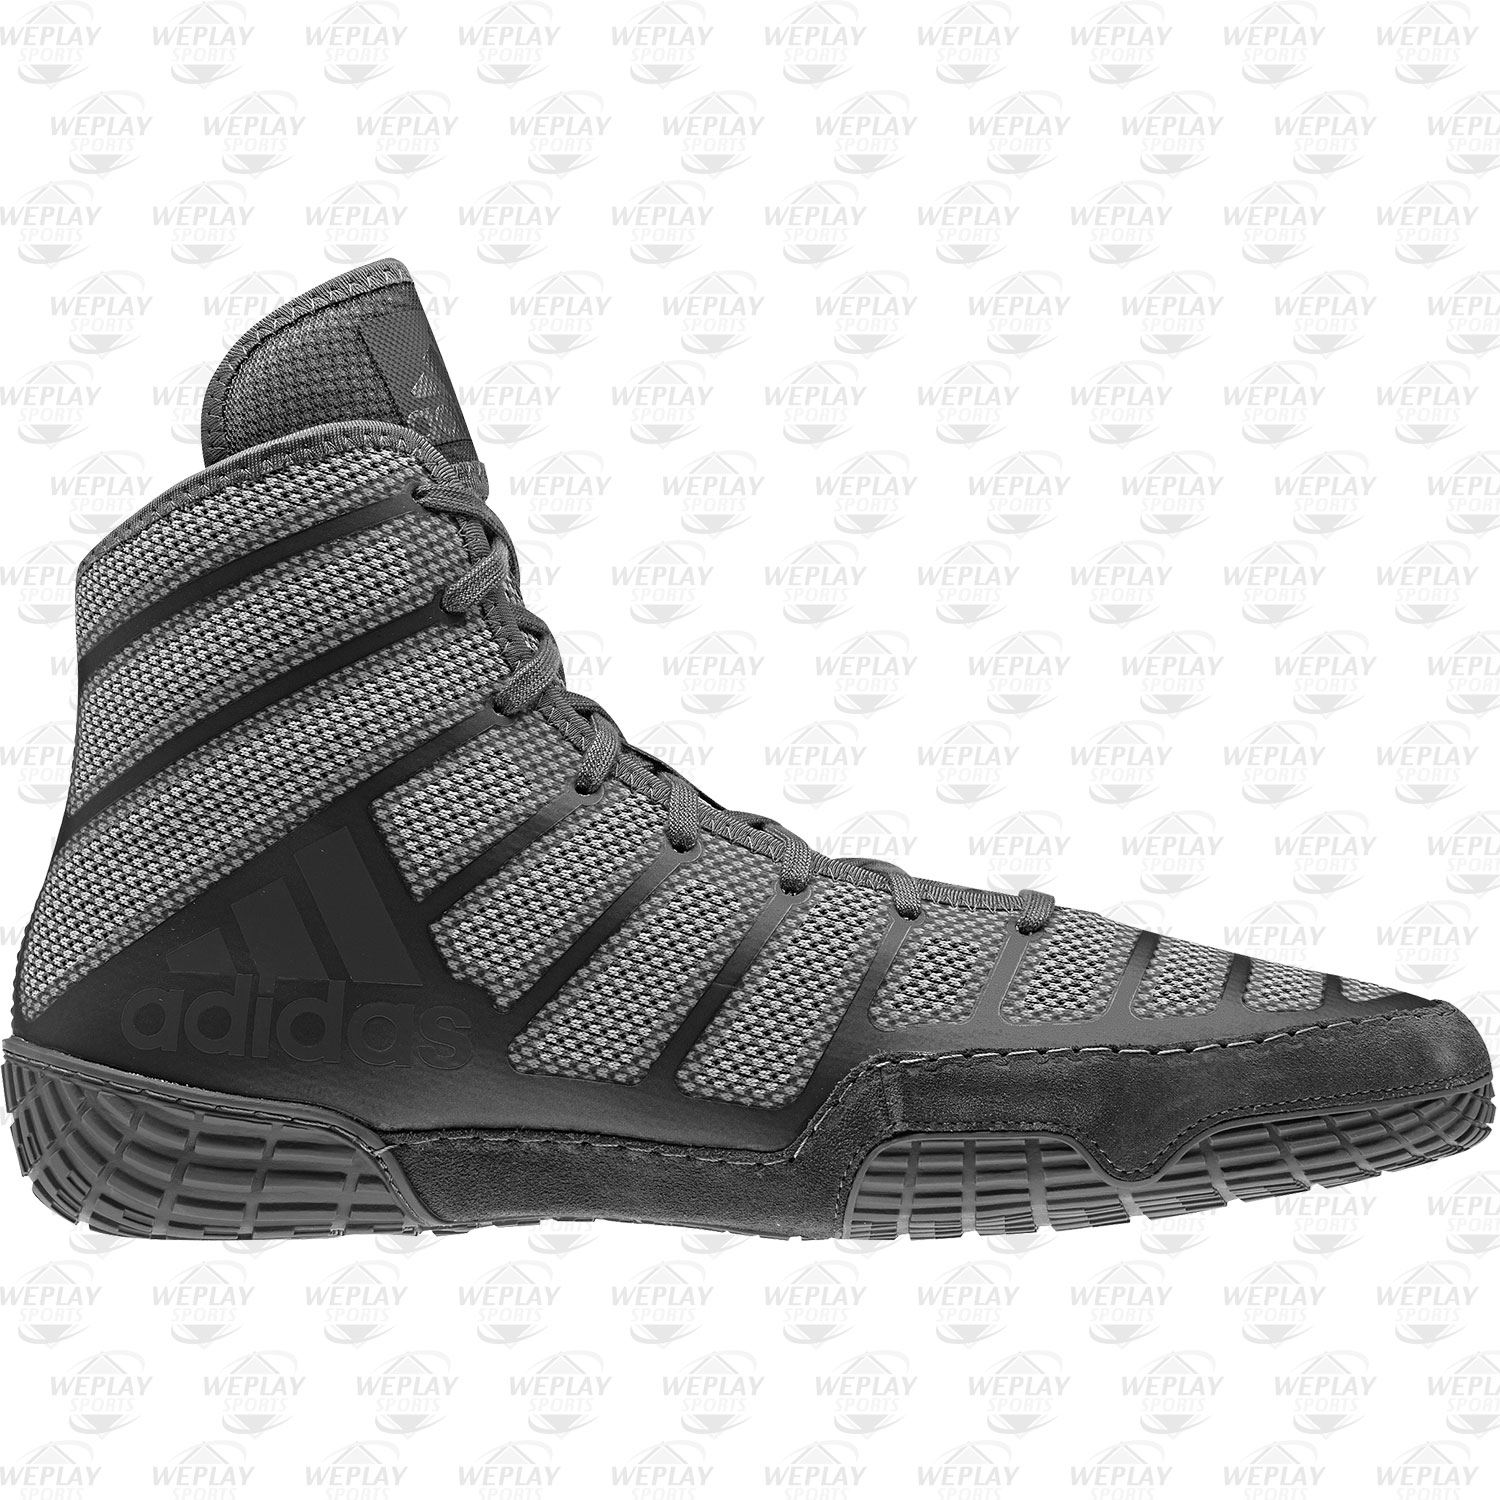 adidas adizero varner wrestling shoes - grey-black-gold - 14